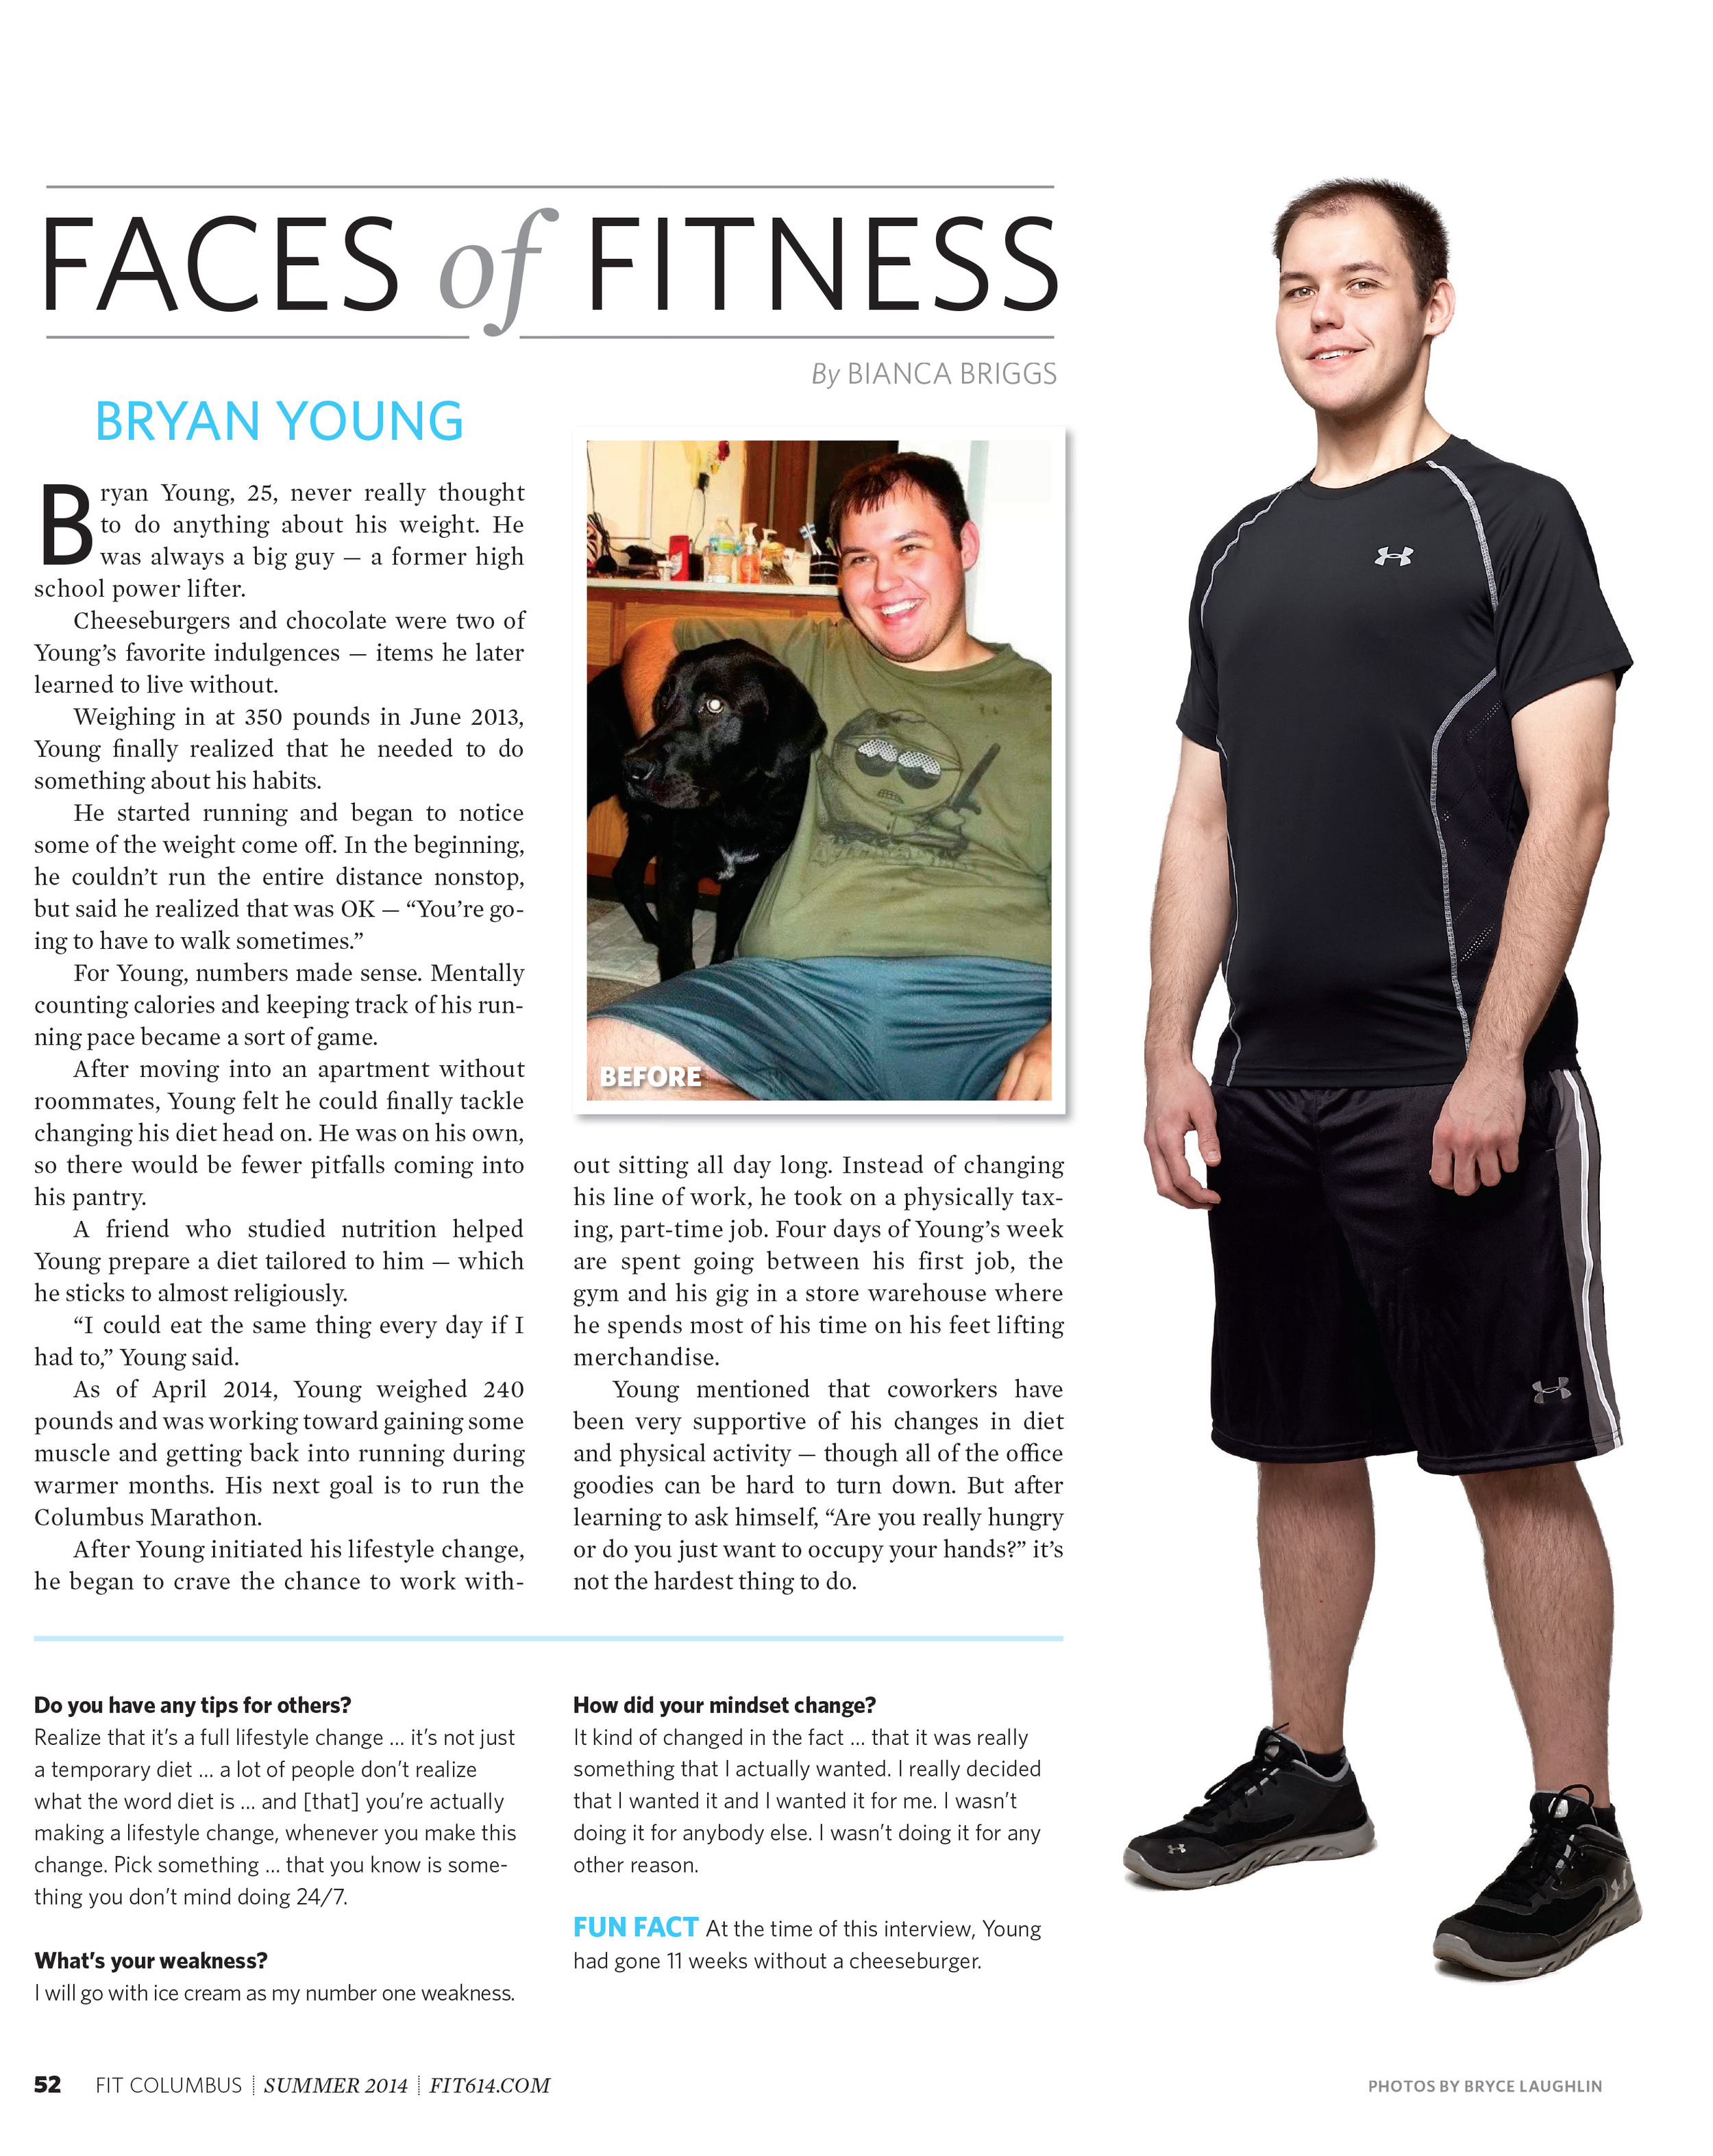 Faces of Fitness